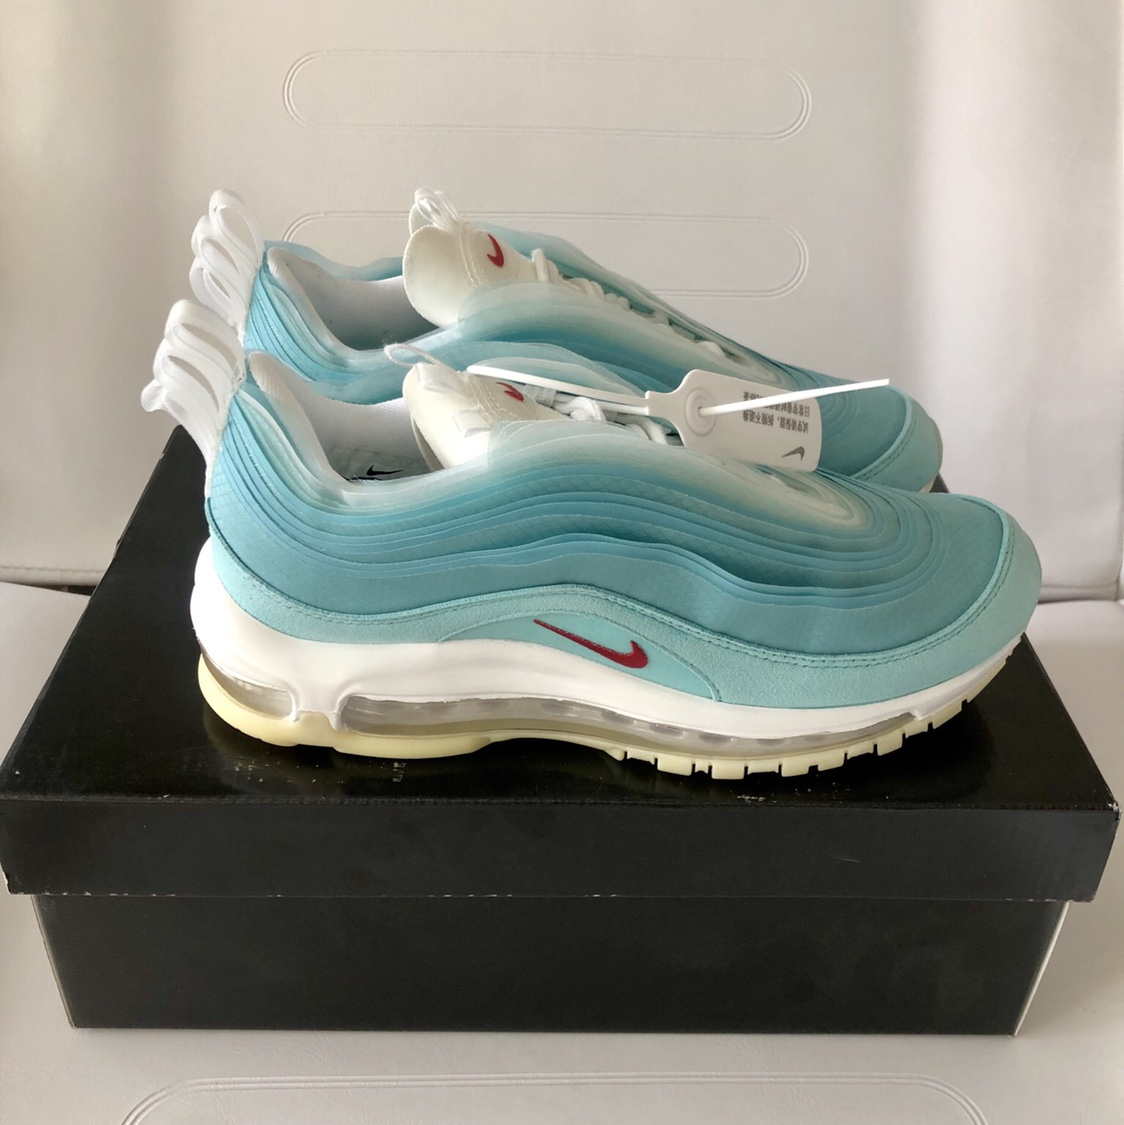 Air Max '97 Mirrored Gate (Official Video) YouTube